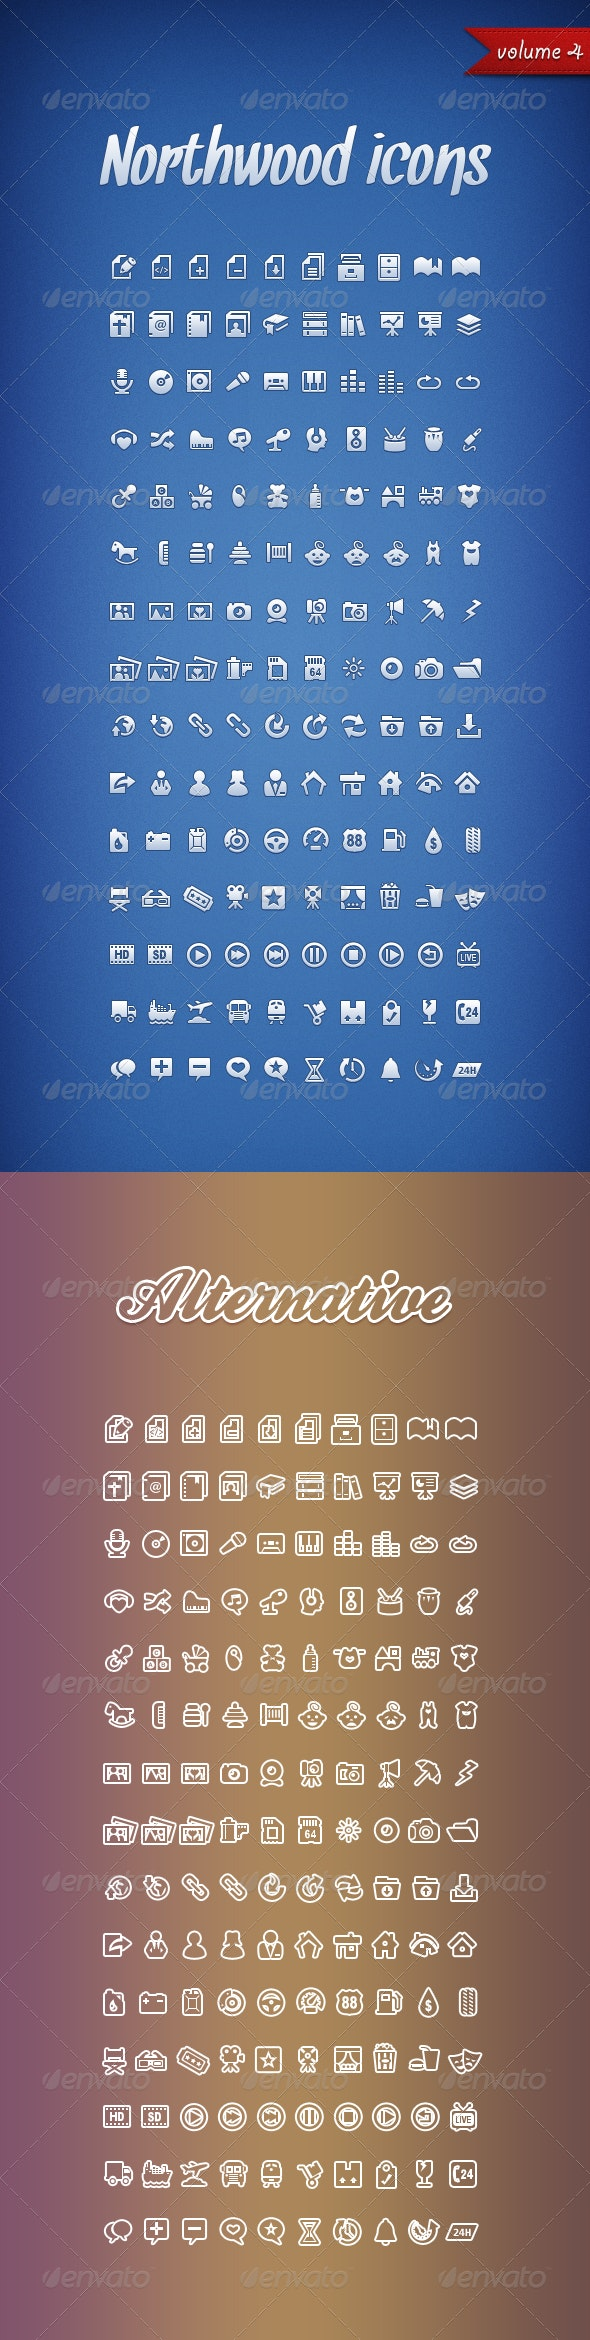 Northwood Icons Volume 4 - Miscellaneous Characters